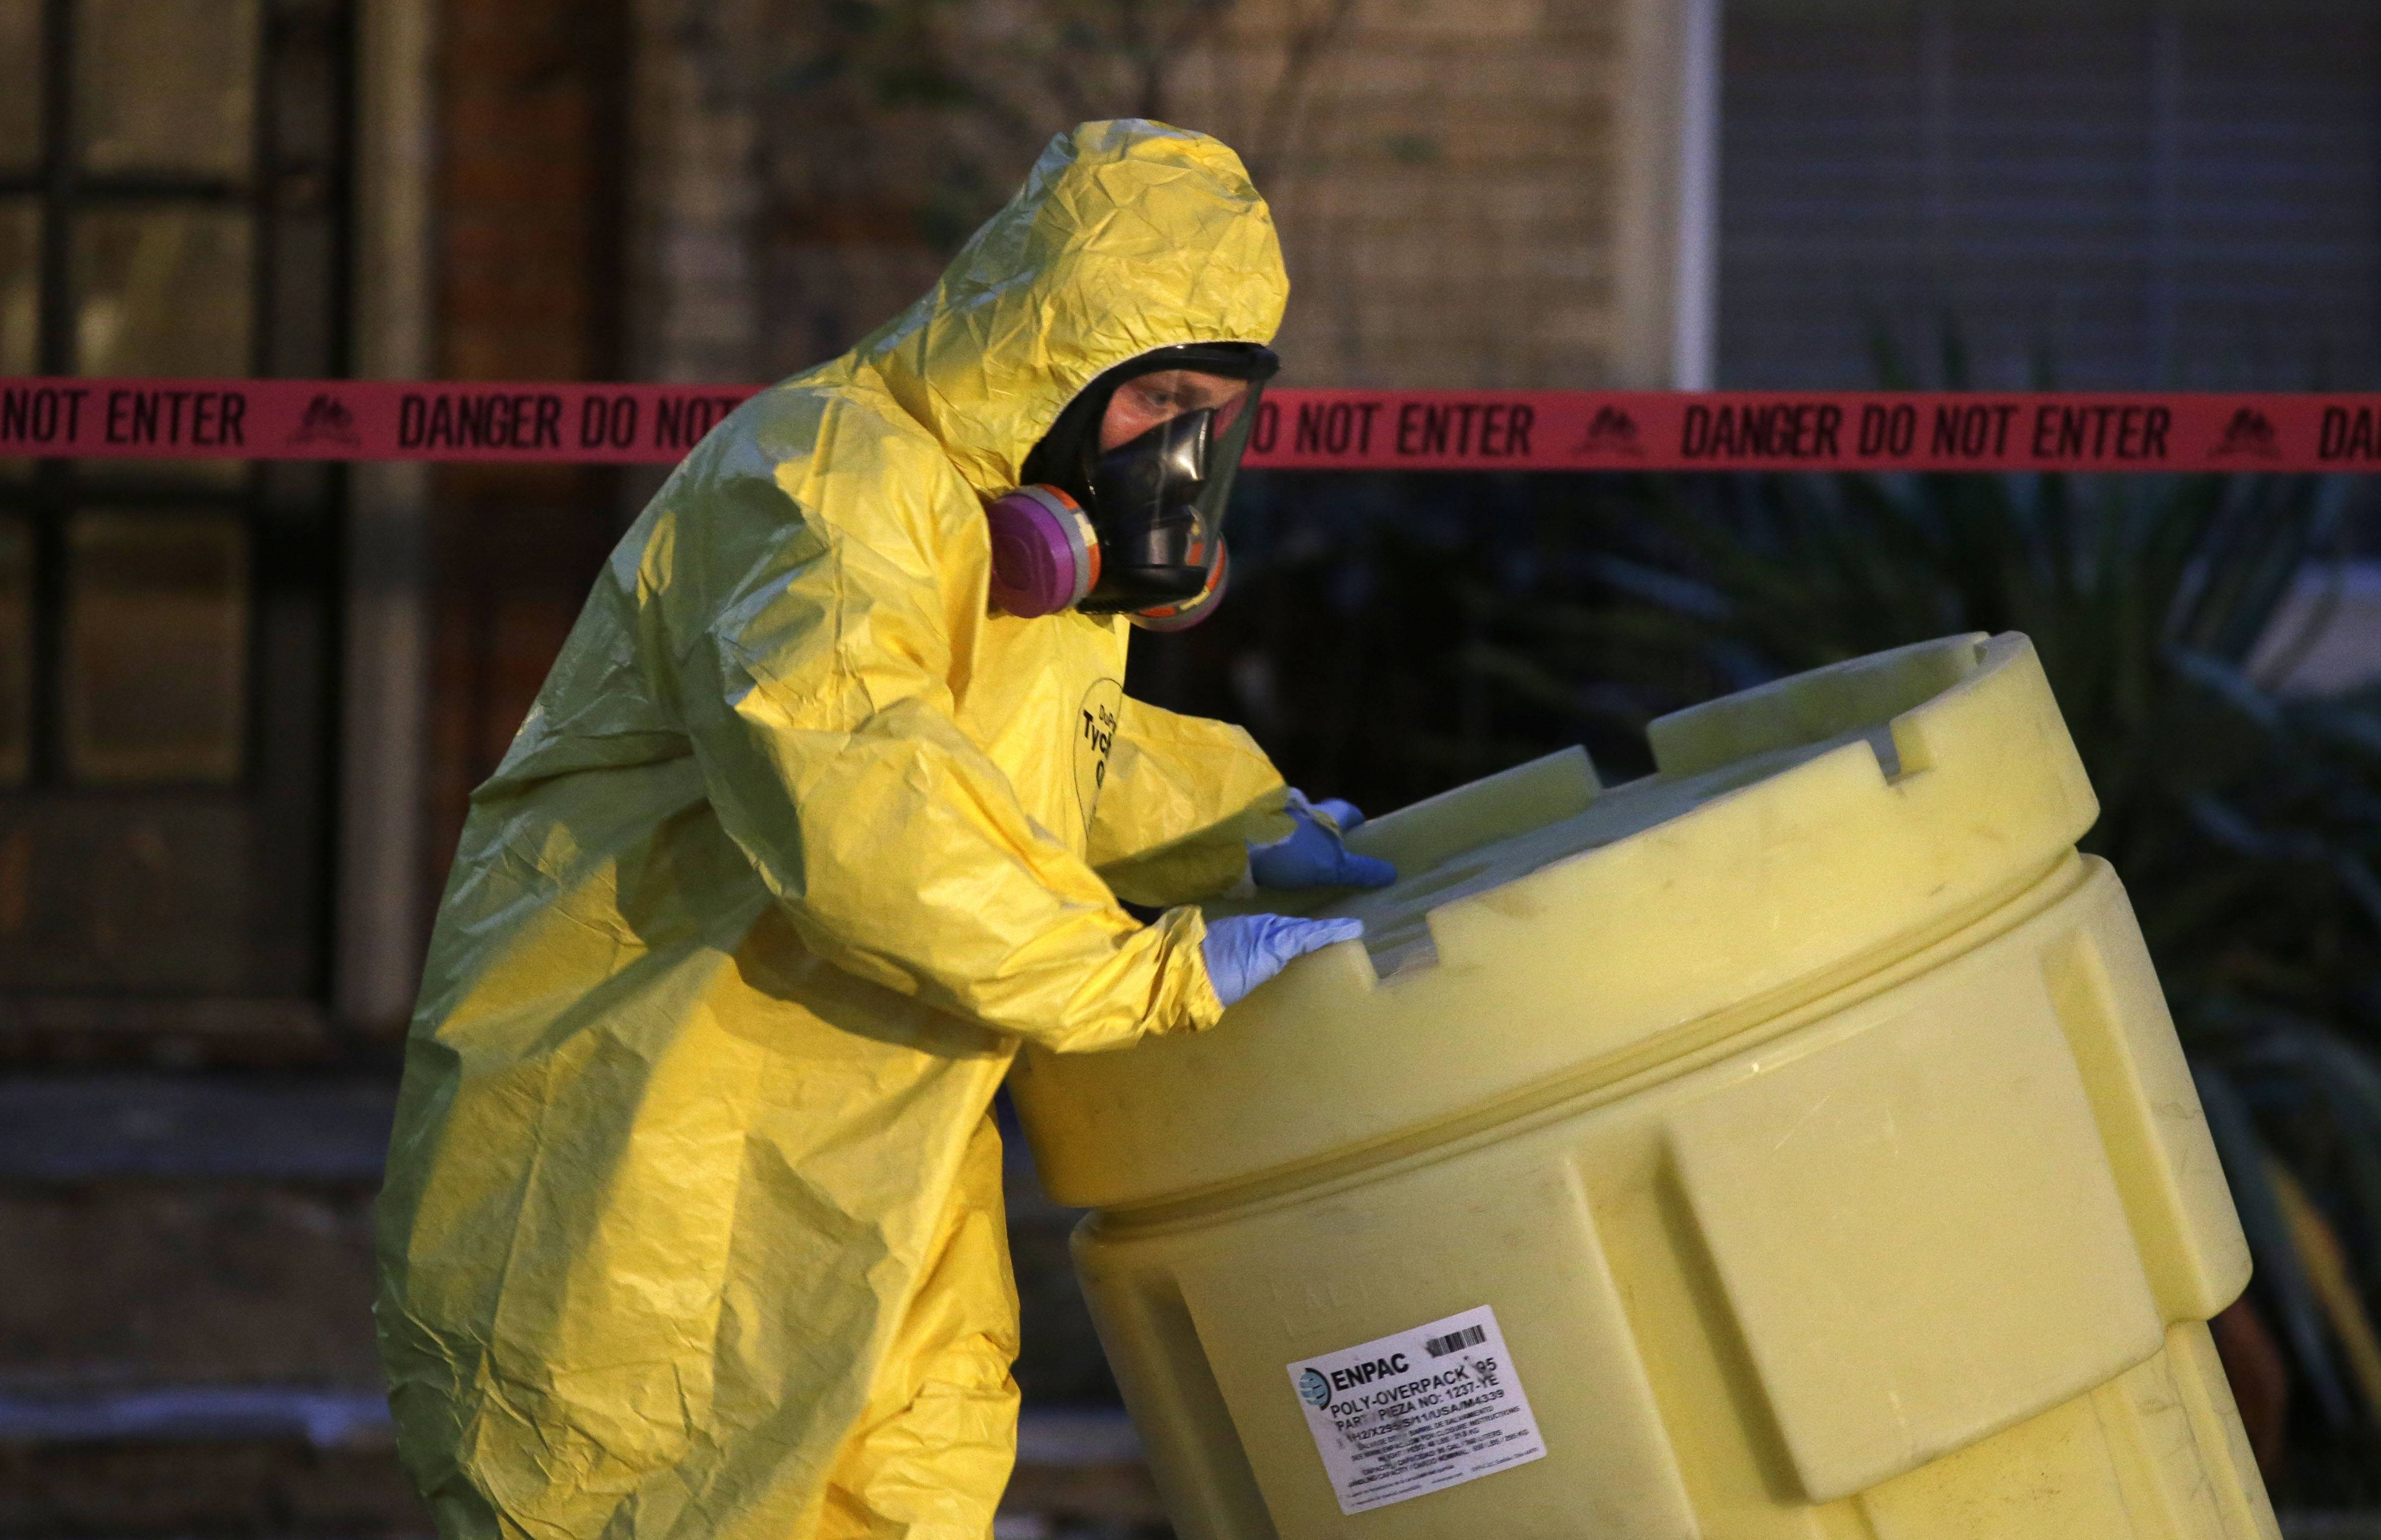 Texas health worker first to contract Ebola in U.S.